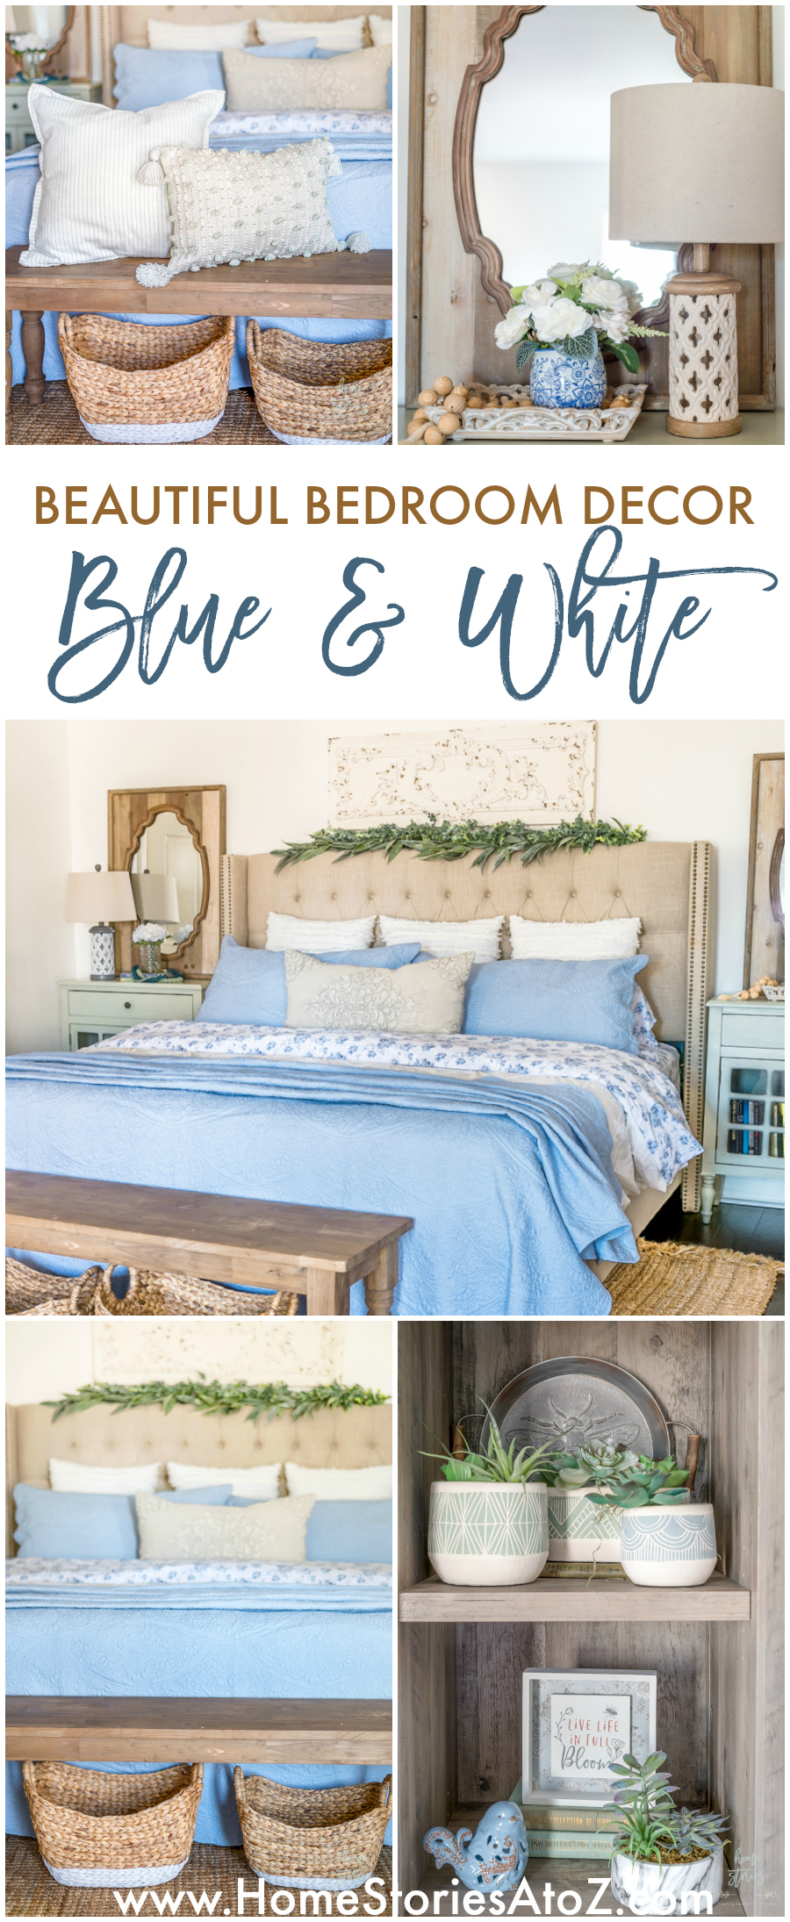 Beautiful Bedroom Decor in Blue and White